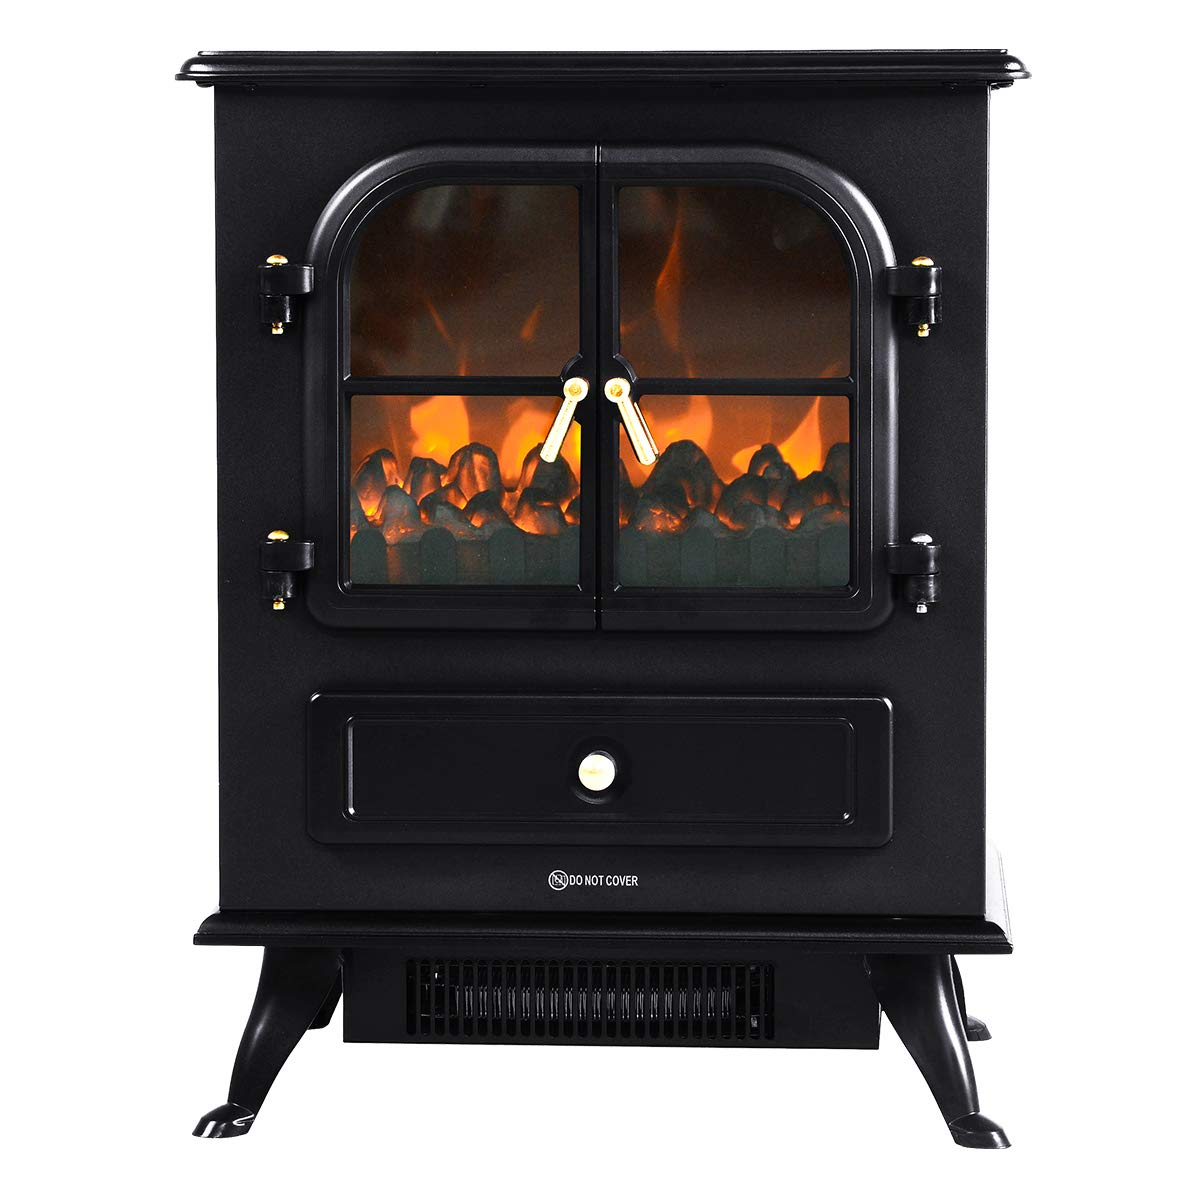 COSTWAY Electric Stove Heater, 1800W Freestanding Fireplace with LED Log Burning Frame Effect, Adjustable Thermostat and Overheat Protection, Indoor Heater Ideal for Living Room